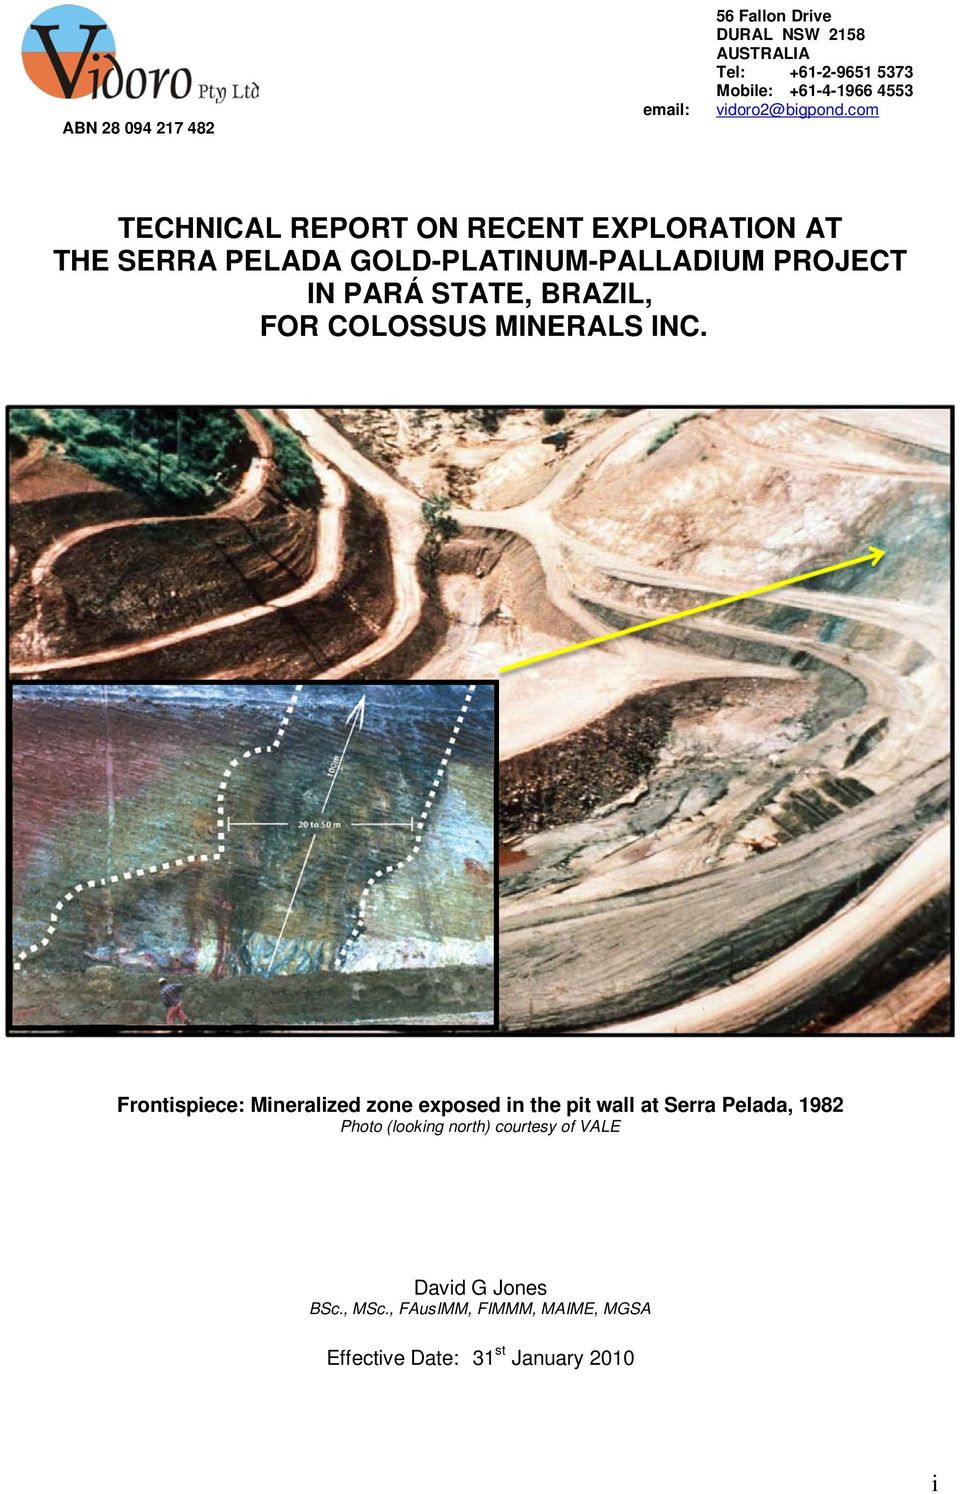 com TECHNICAL REPORT ON RECENT EXPLORATION AT THE SERRA PELADA GOLD-PLATINUM-PALLADIUM PROJECT IN PARÁ STATE, BRAZIL,